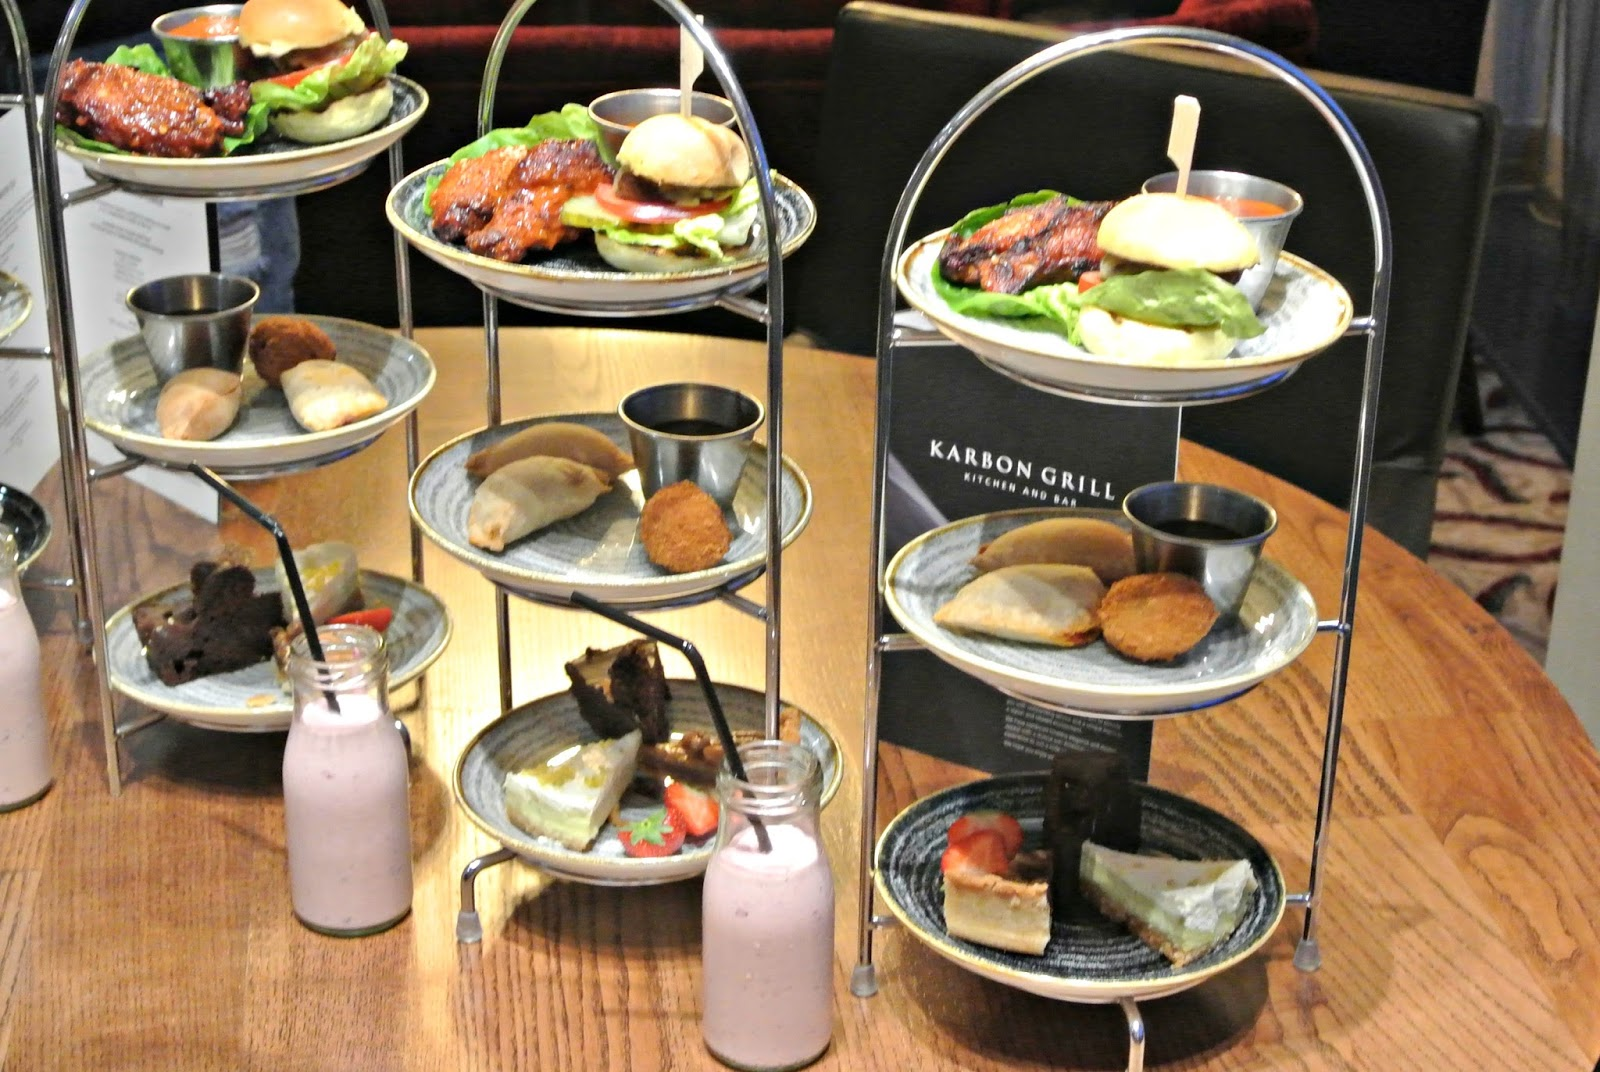 Karbon Grill American Style Afternoon Tea at Hilton Garden Inn, Sunderland Image